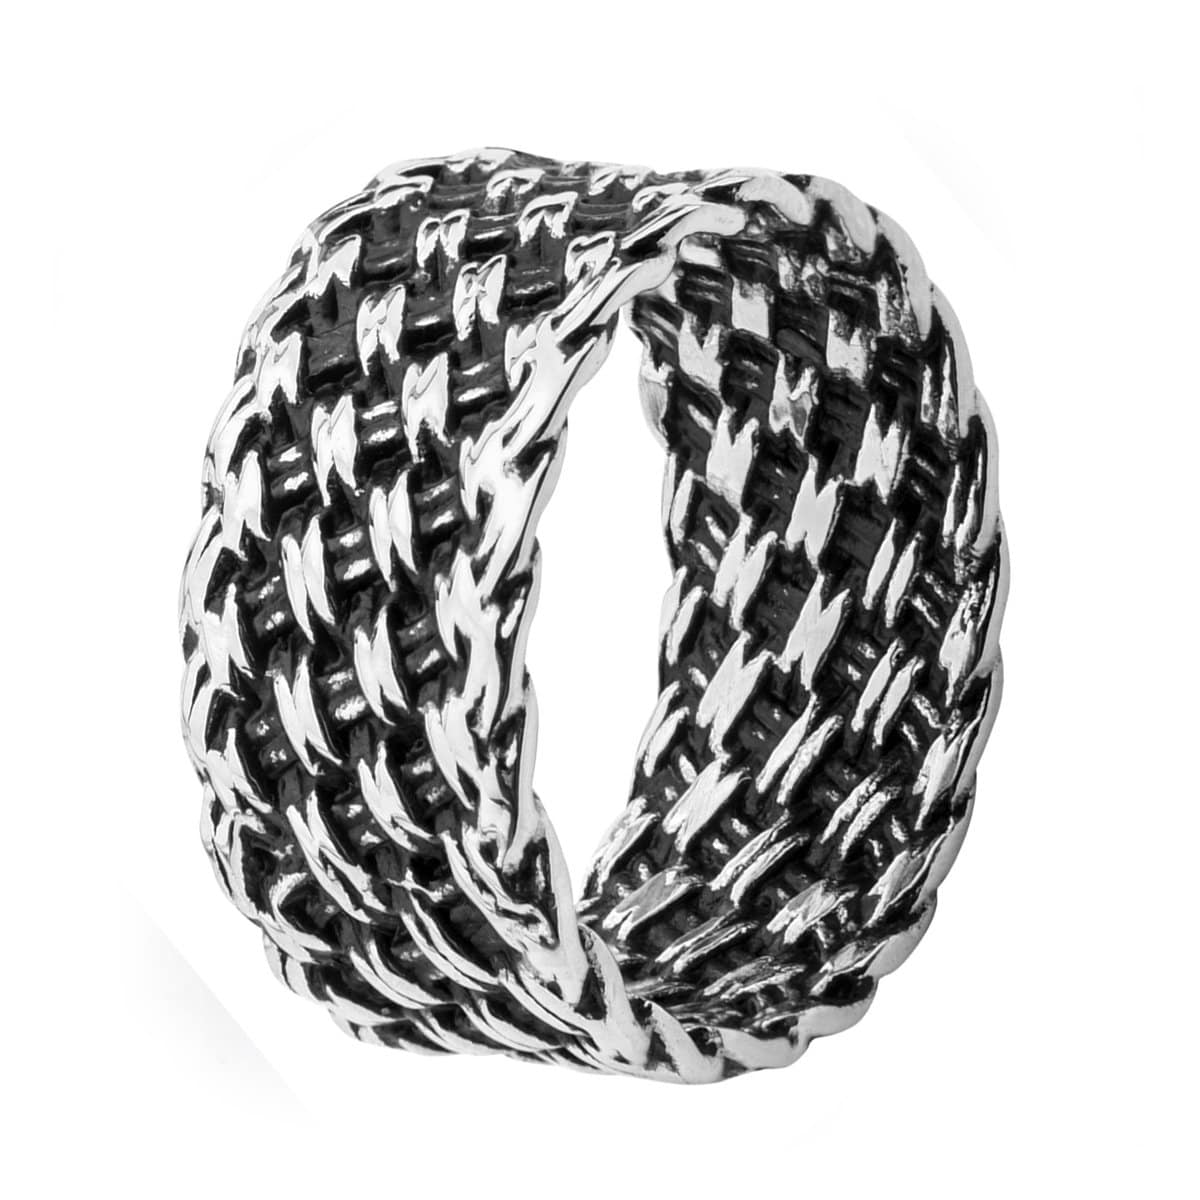 Darkened Silver Stainless Steel Cross-Weave Woven Pattern Ring - Inox Jewelry India